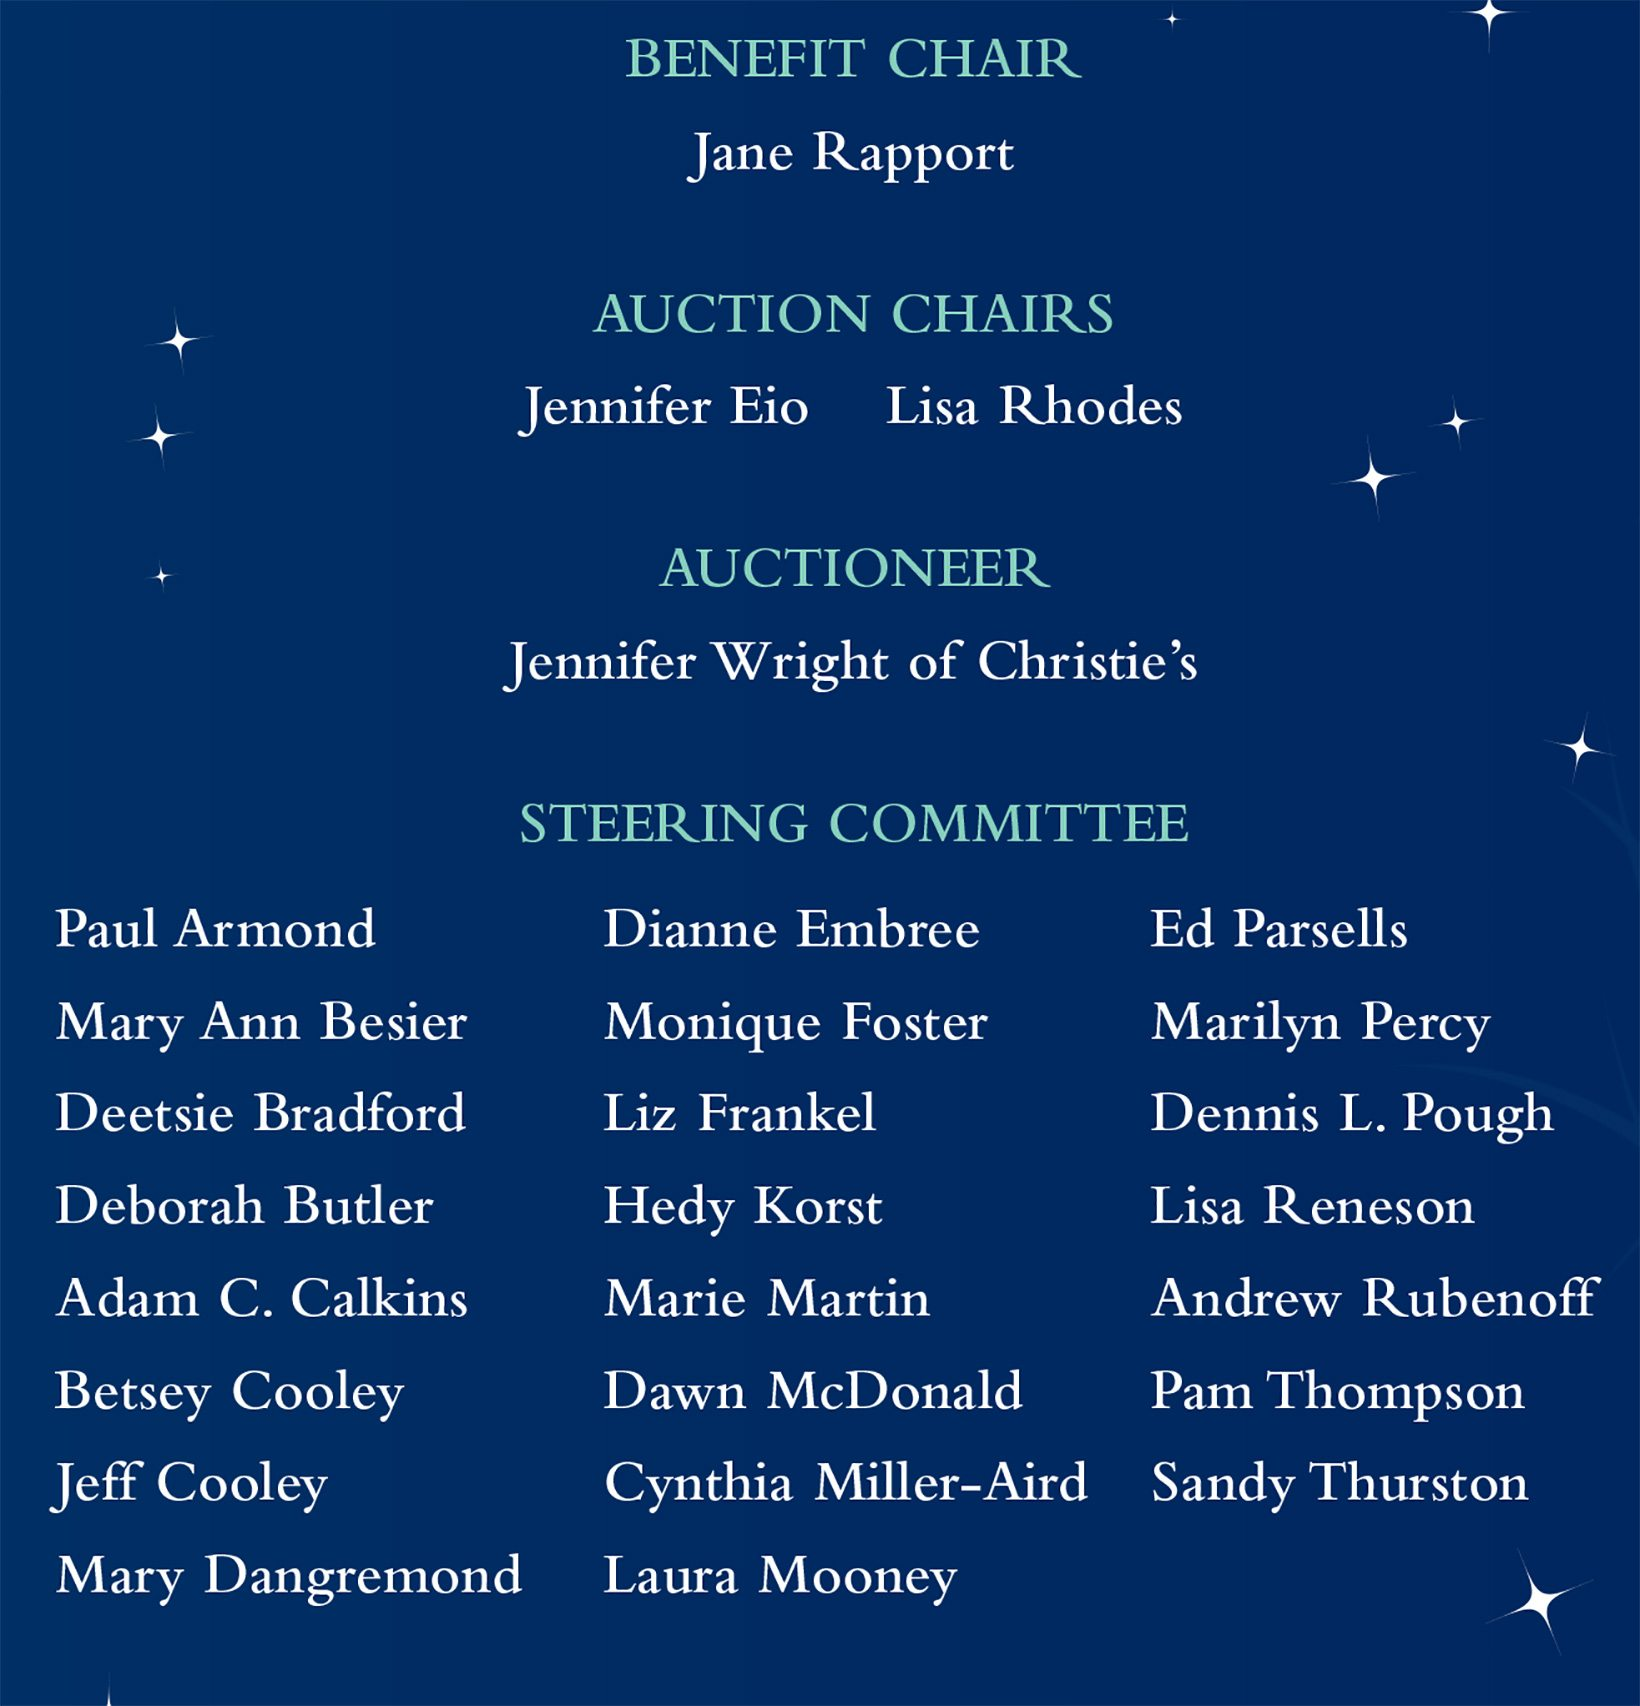 AuctionCommittee